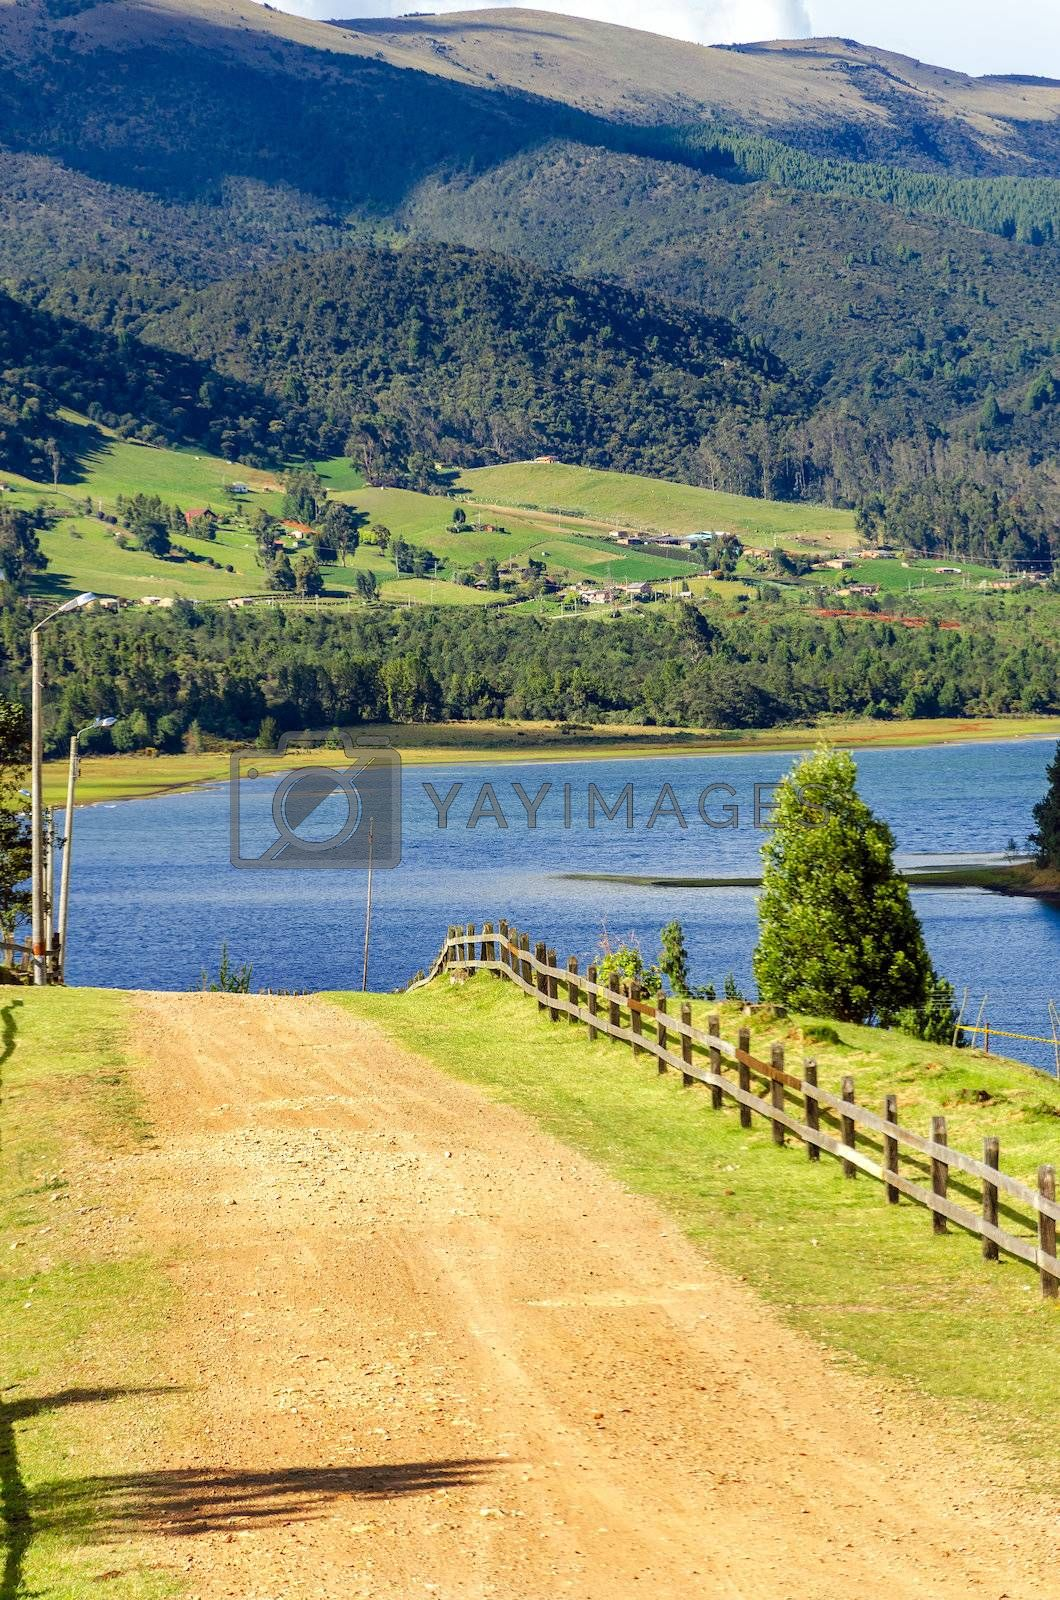 Country road in Neusa, Colombia leading to the shore of a beautiful blue lake